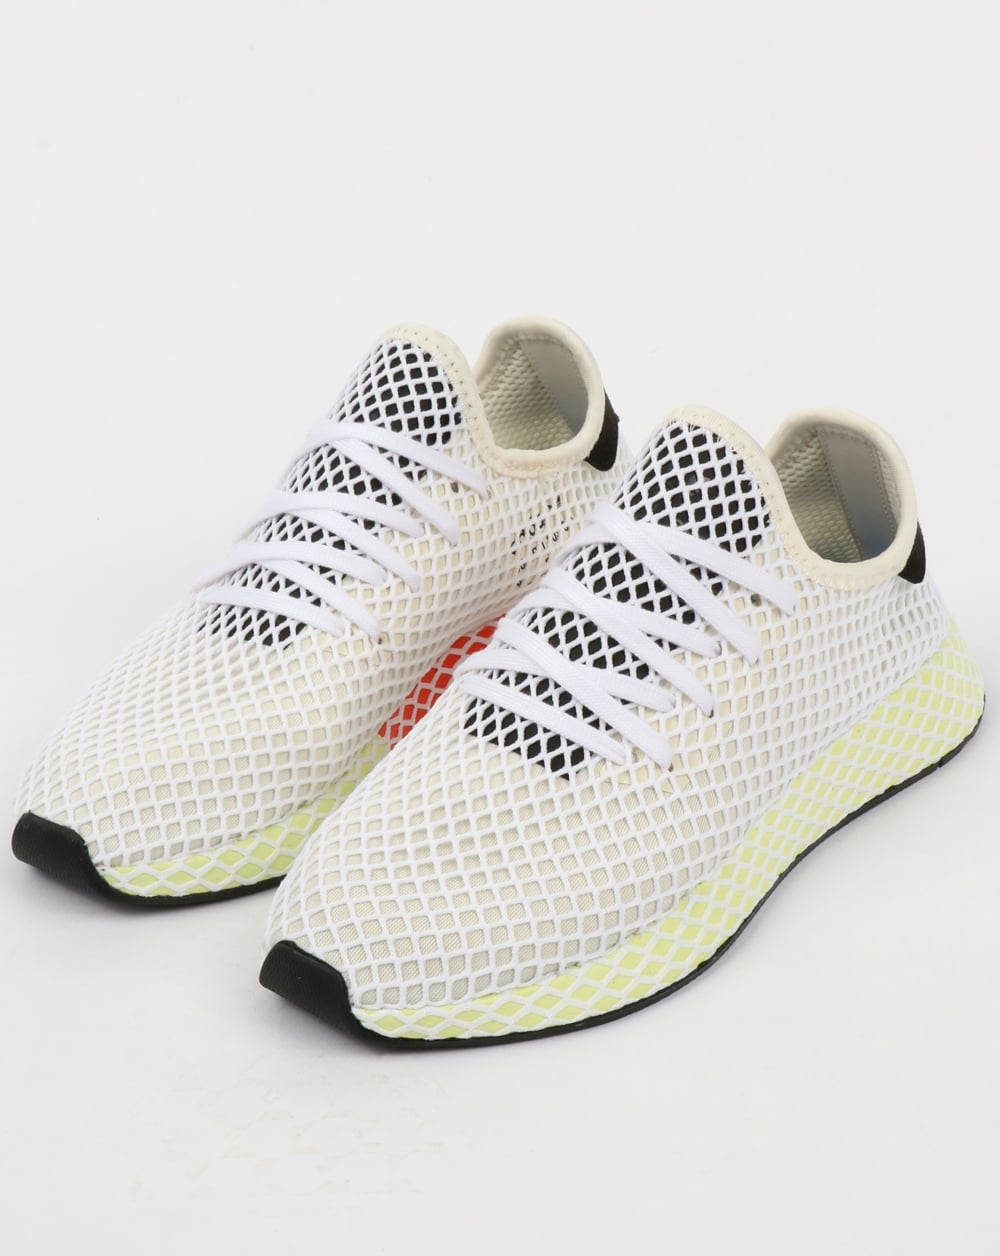 1c619a8a1 adidas Trainers Adidas Deerupt Runner Trainers Chalk White Black